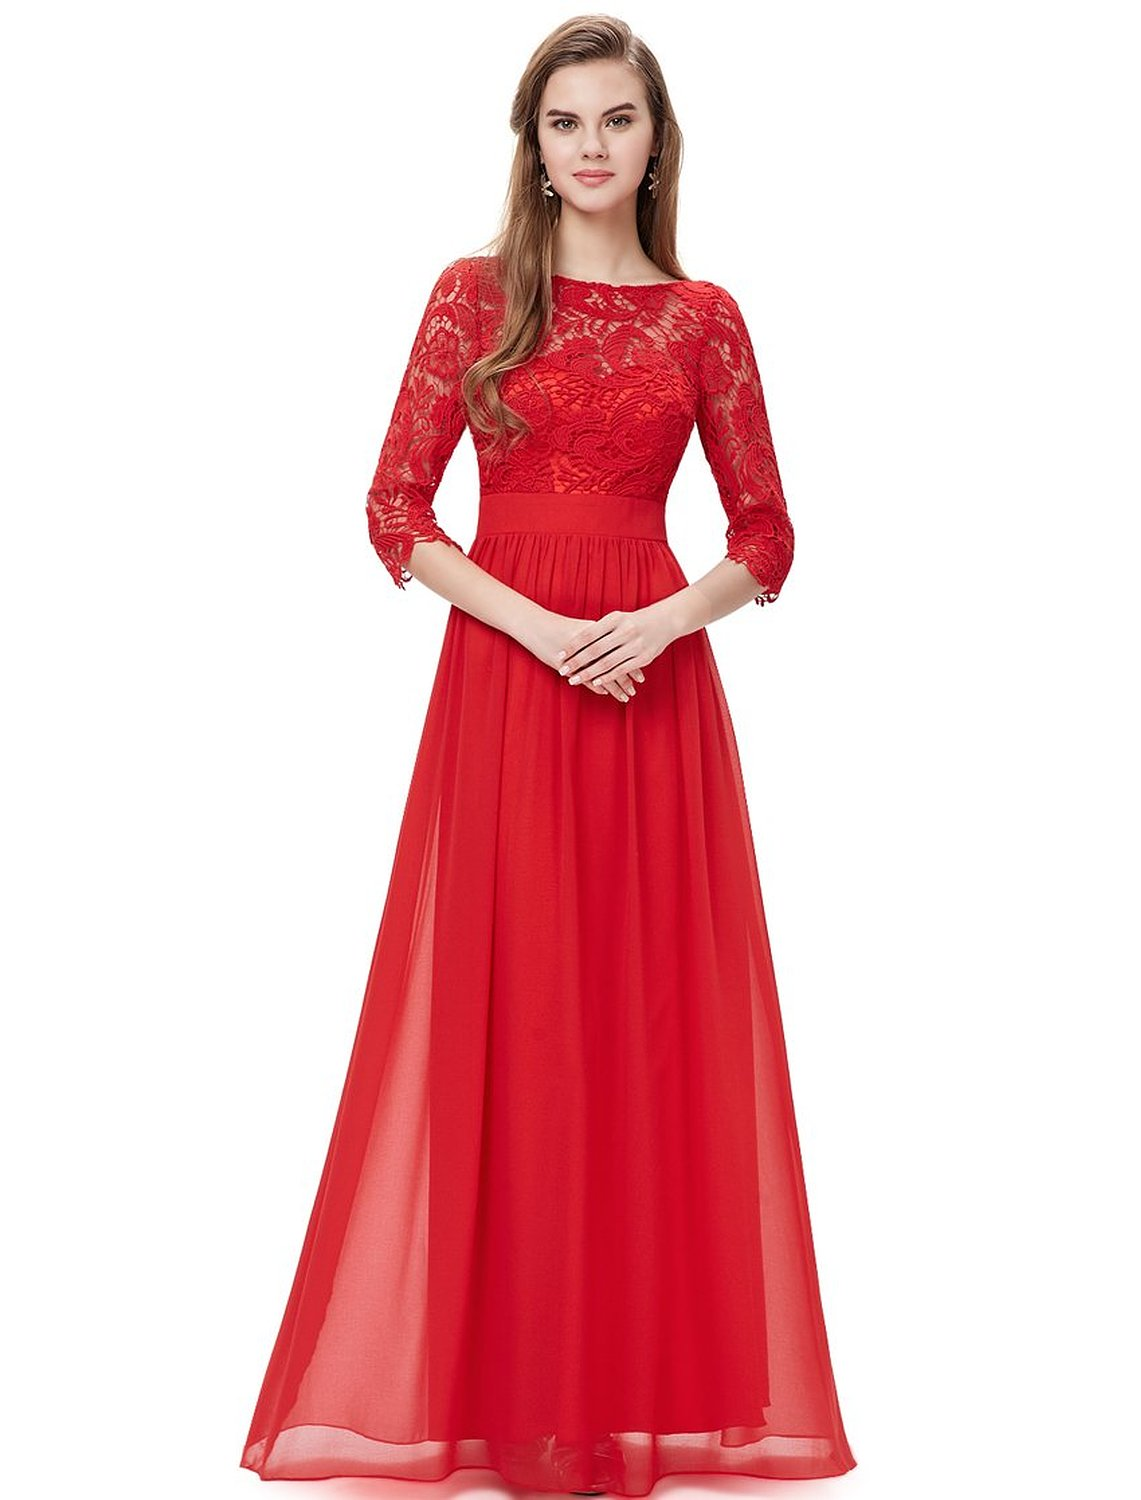 red lace long sleeve wedding dress